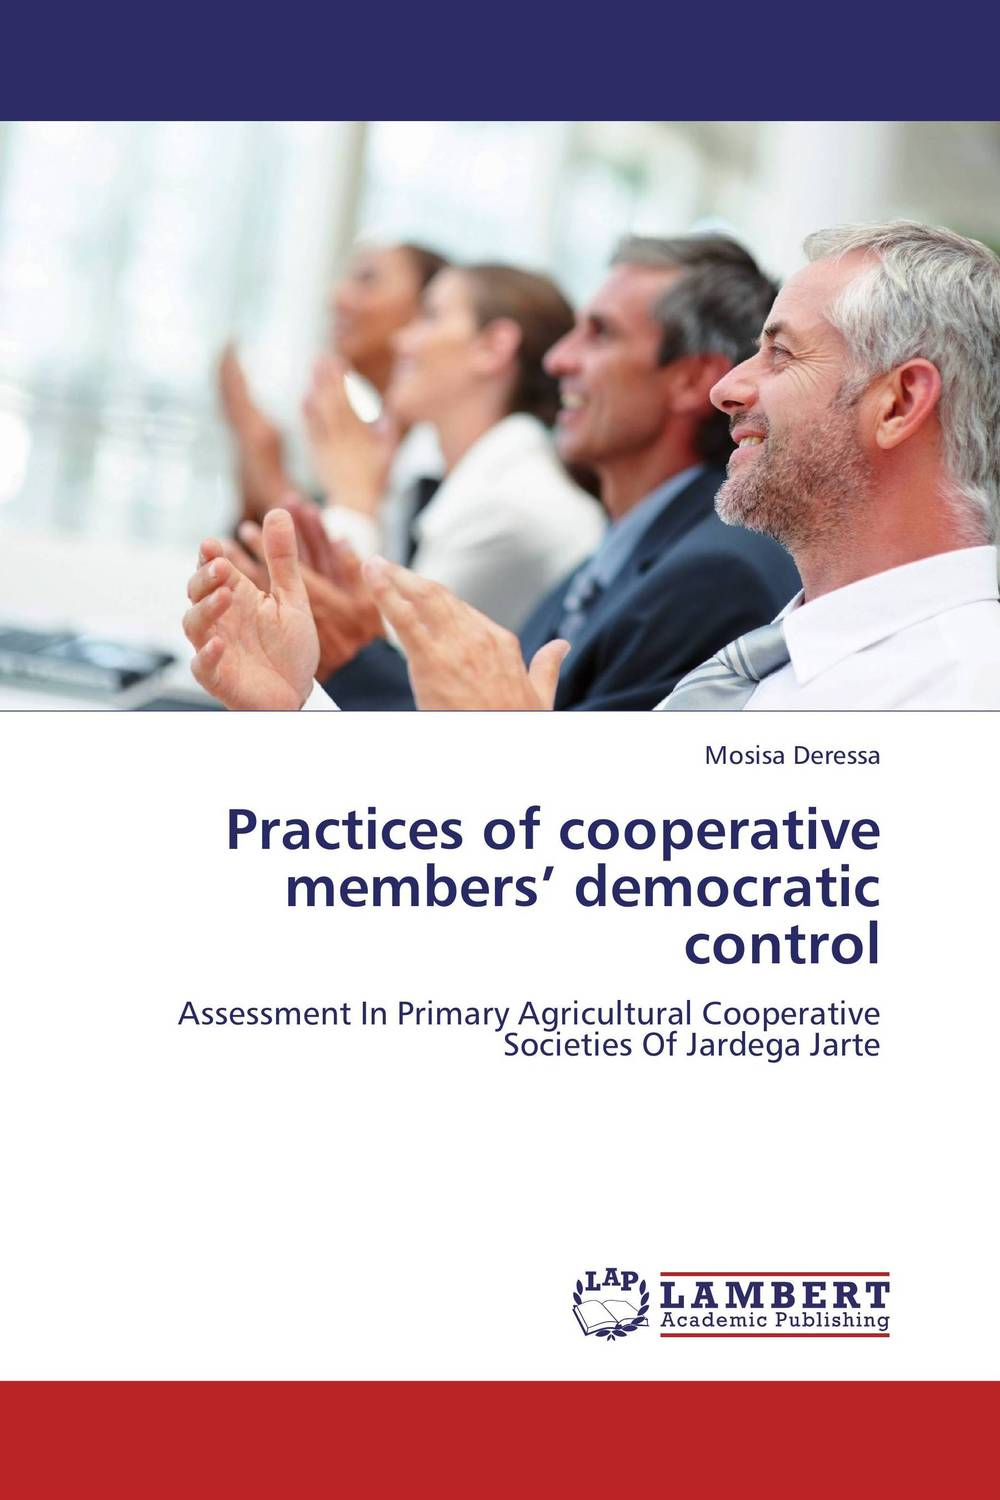 Practices of cooperative members' democratic control course enrollment decisions